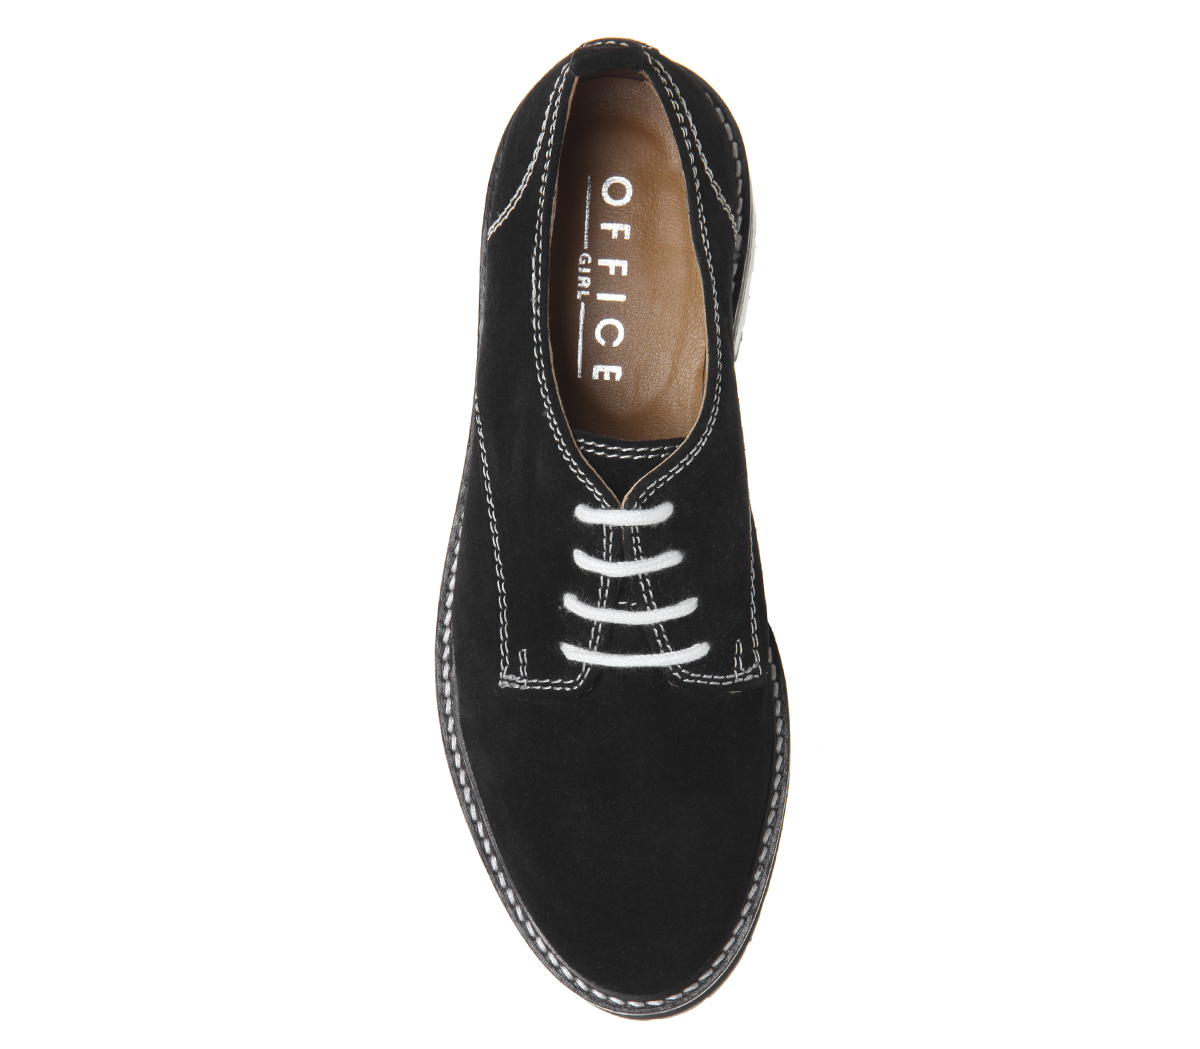 Womens Office Float Contrast Lace Up Flats Black Suede White Stitch Flats